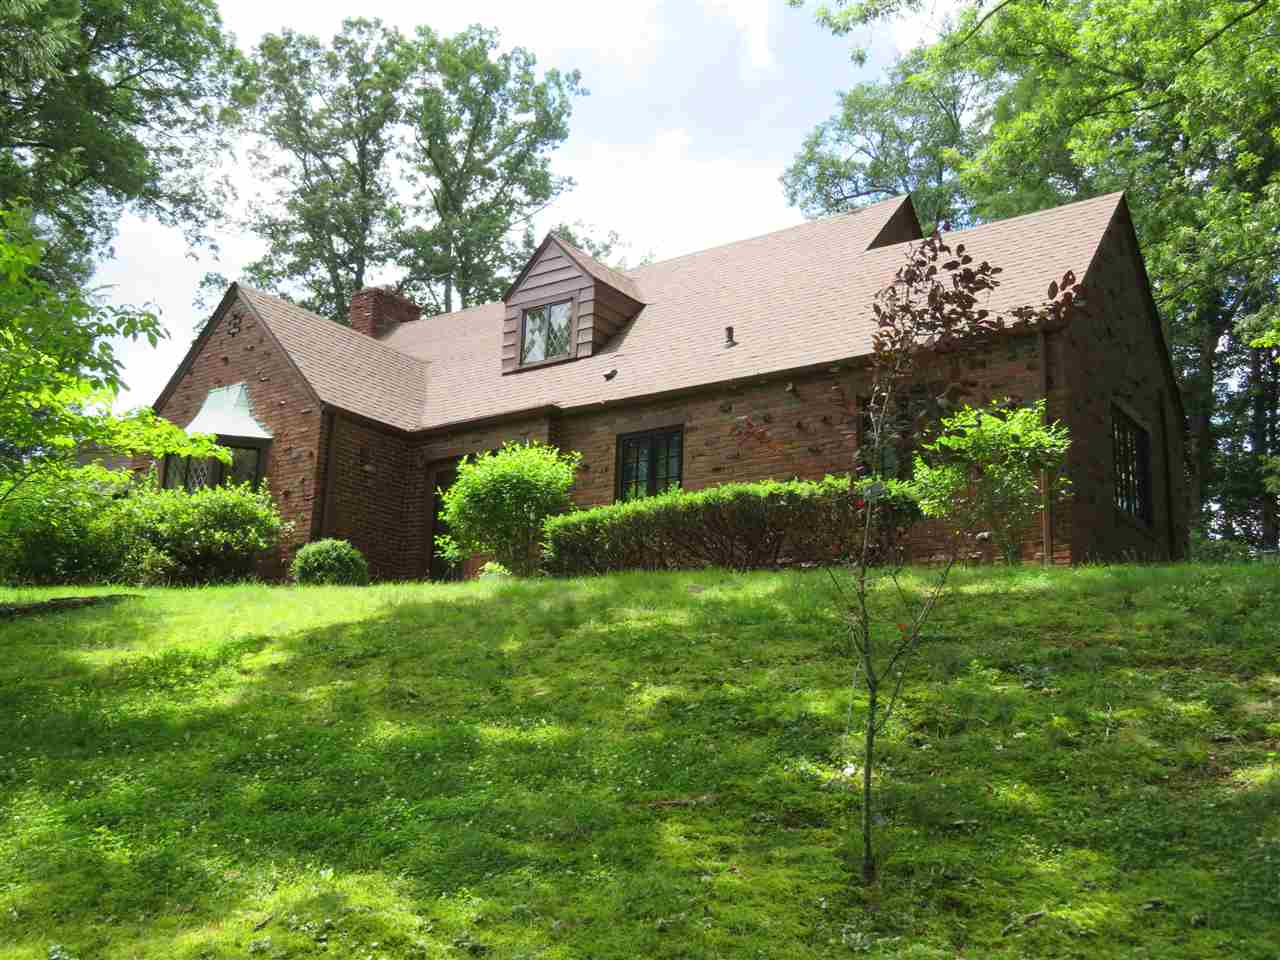 148 PARK LN, HOT SPRINGS, VA 24445